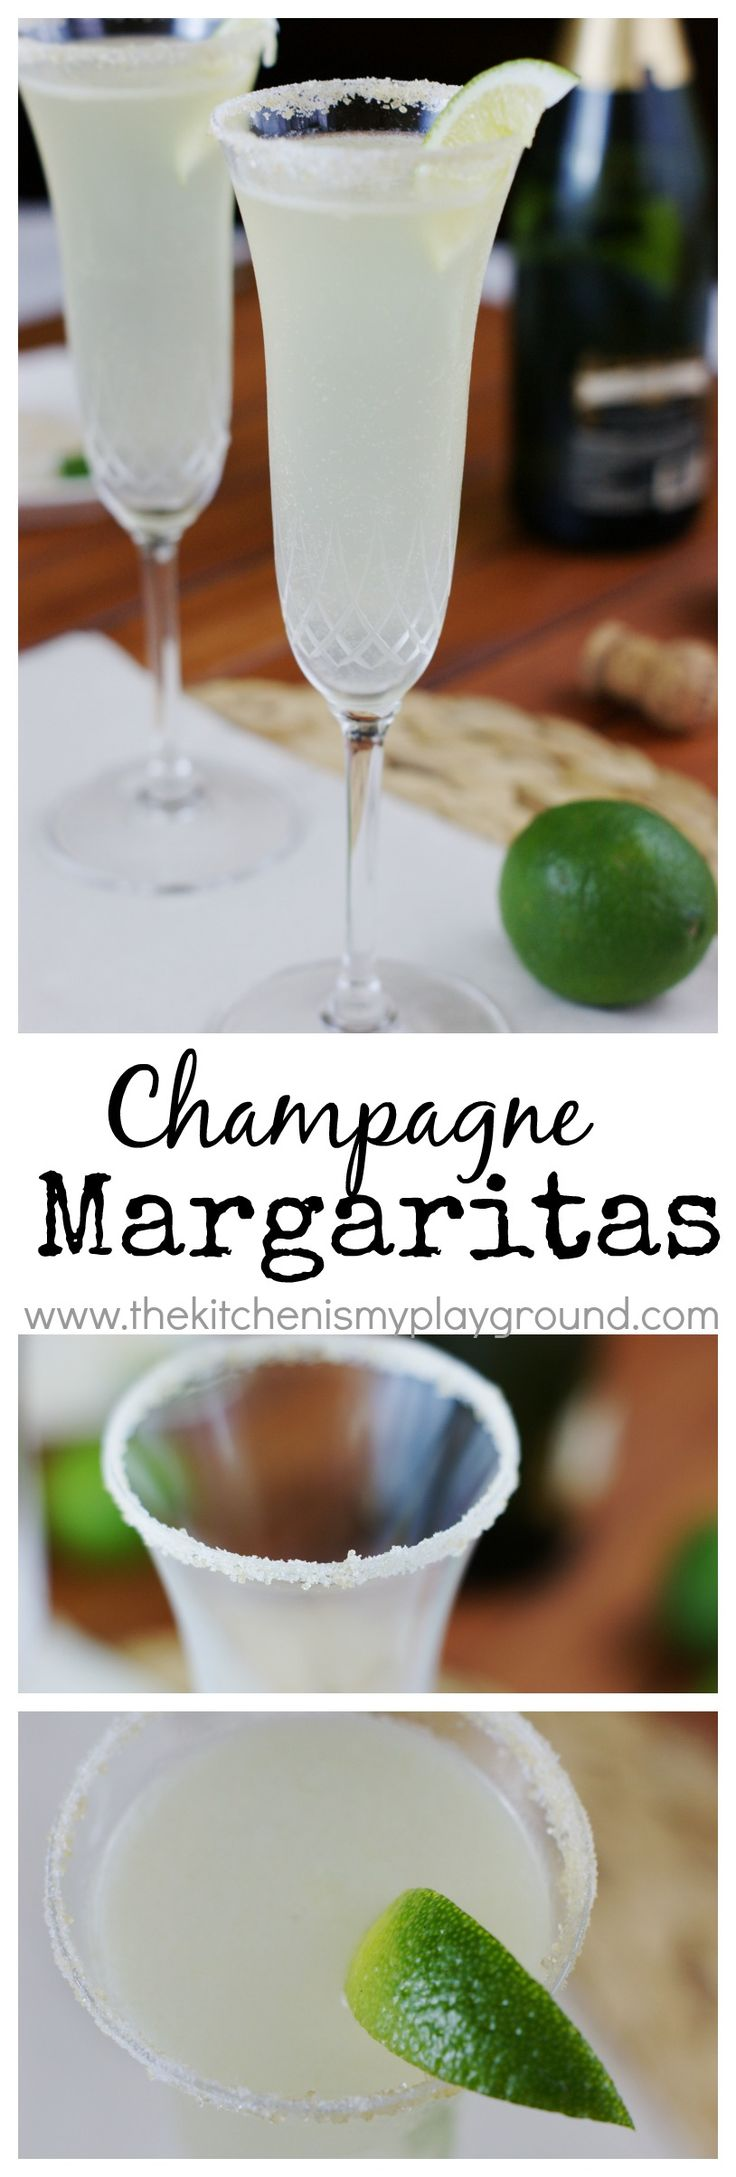 Champagne Margaritas ~ Ring in the new year with the wonderful flavors of champagne and Margaritas in one fun cocktail.